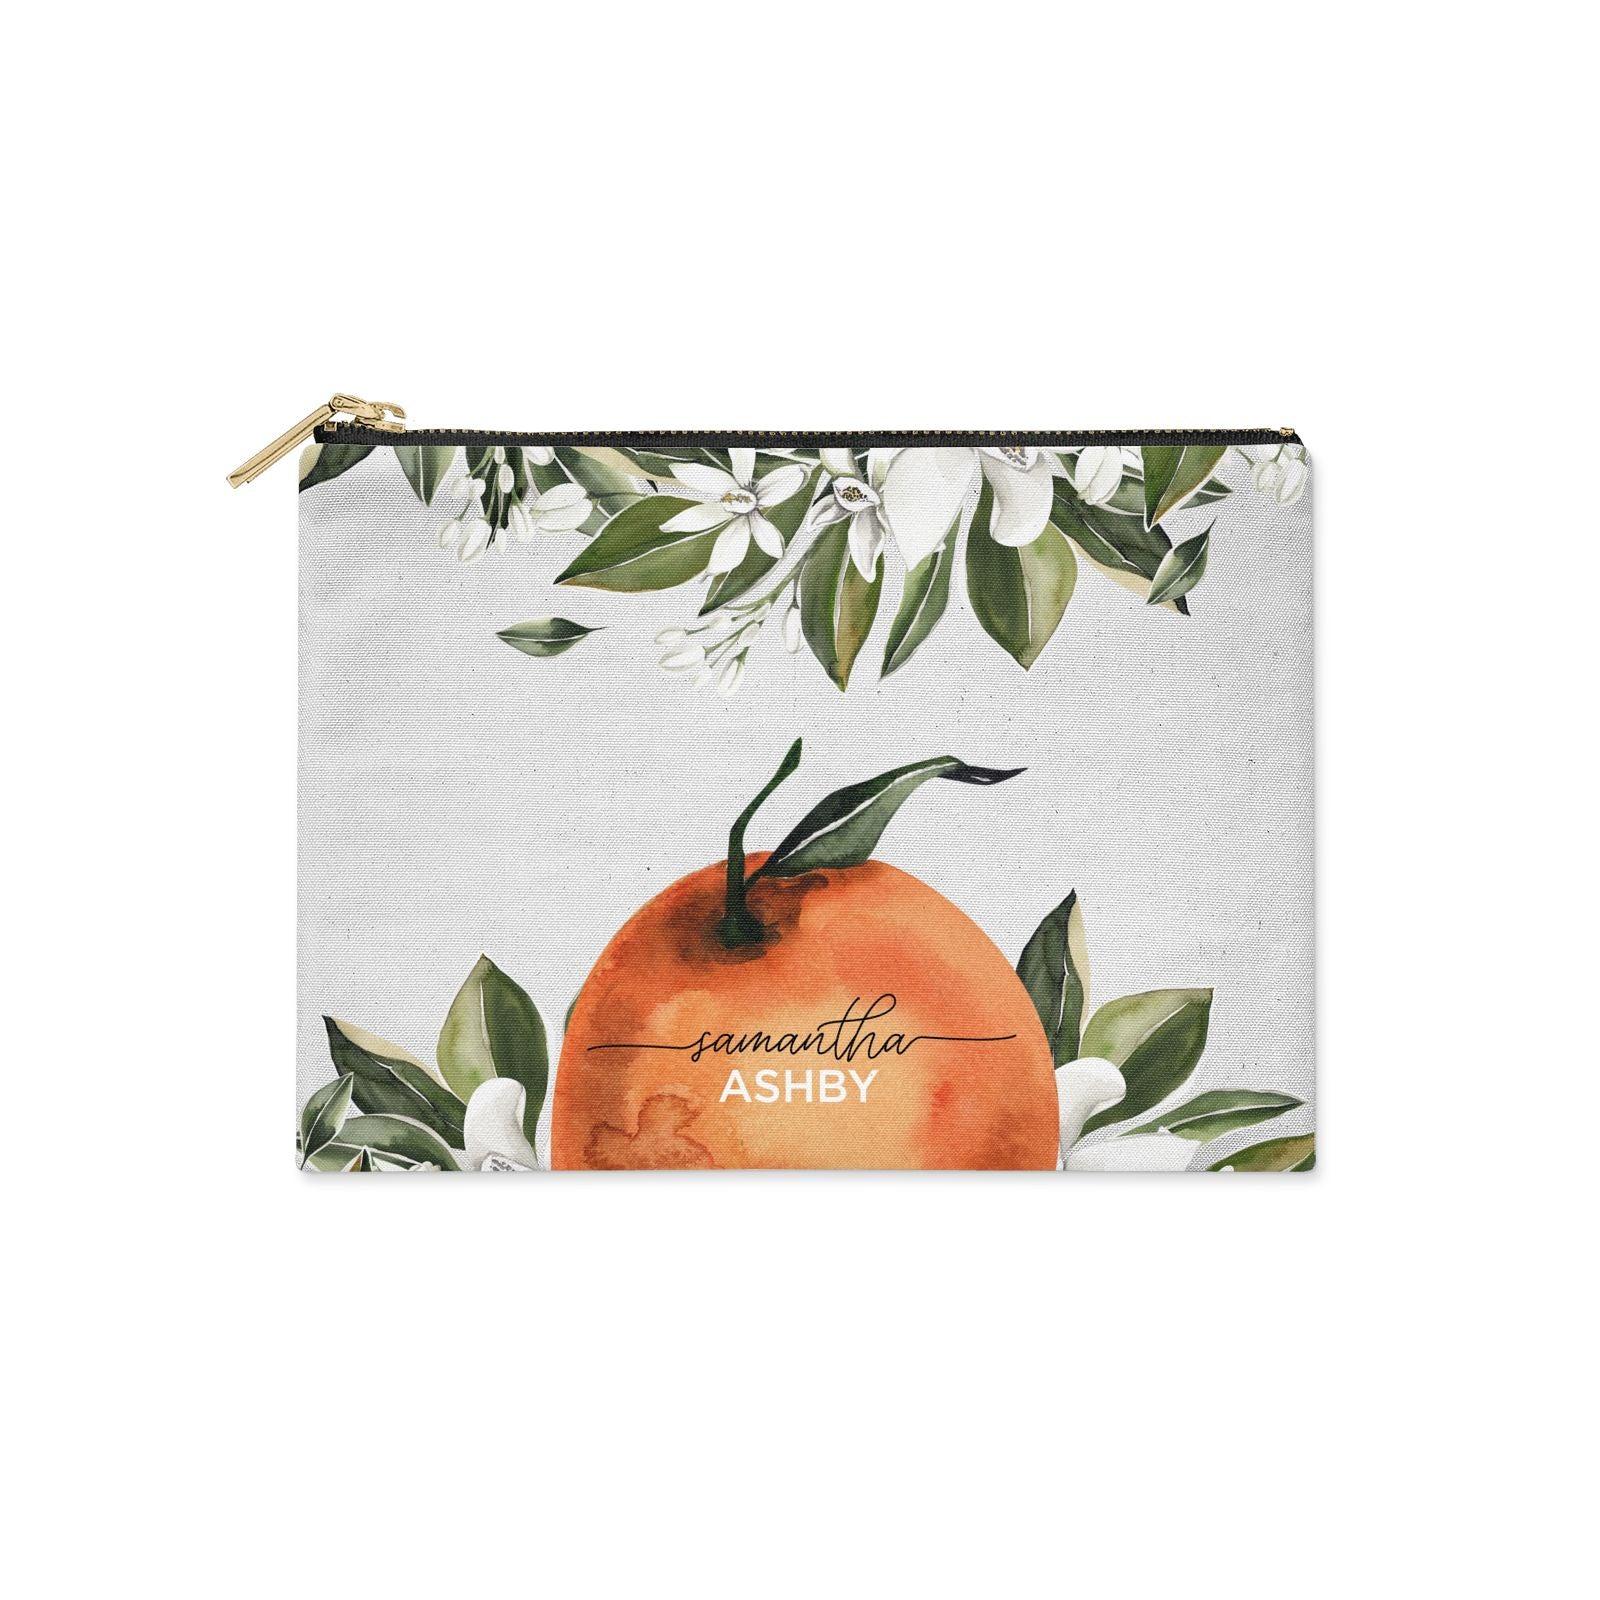 Orange Blossom Personalised Name Clutch Bag Zipper Pouch